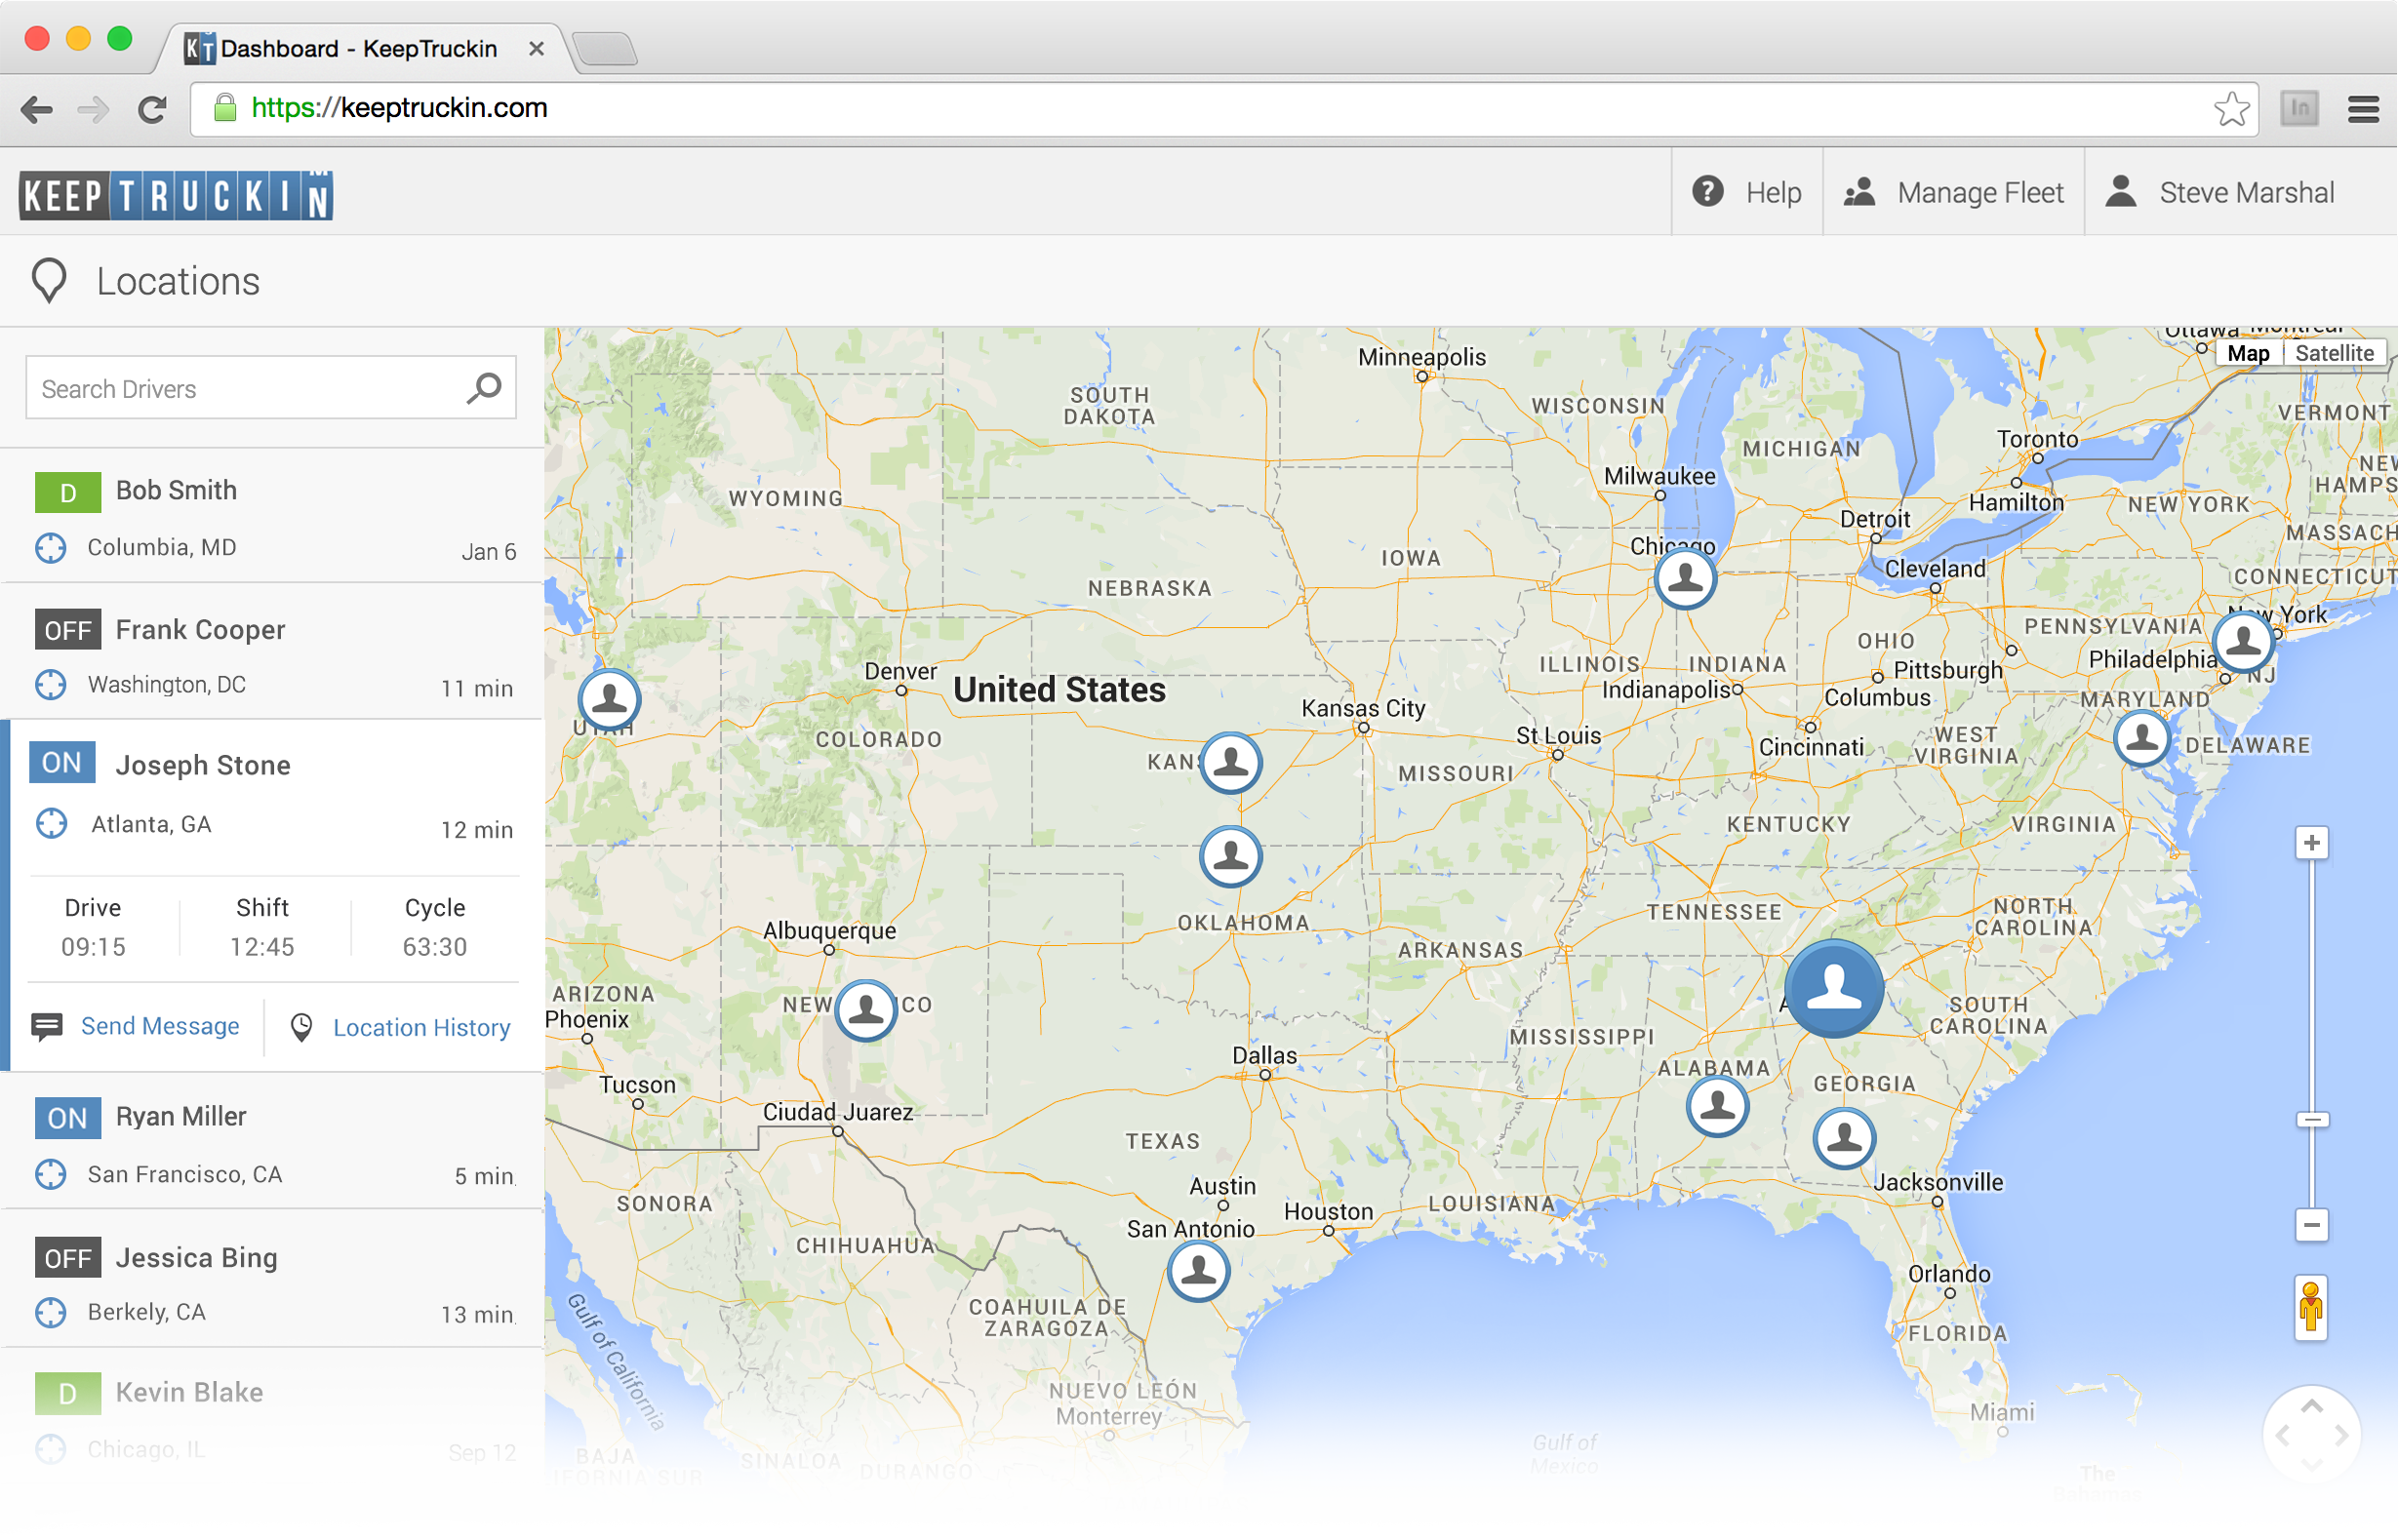 GPS Location Tracking with KeepTruckin